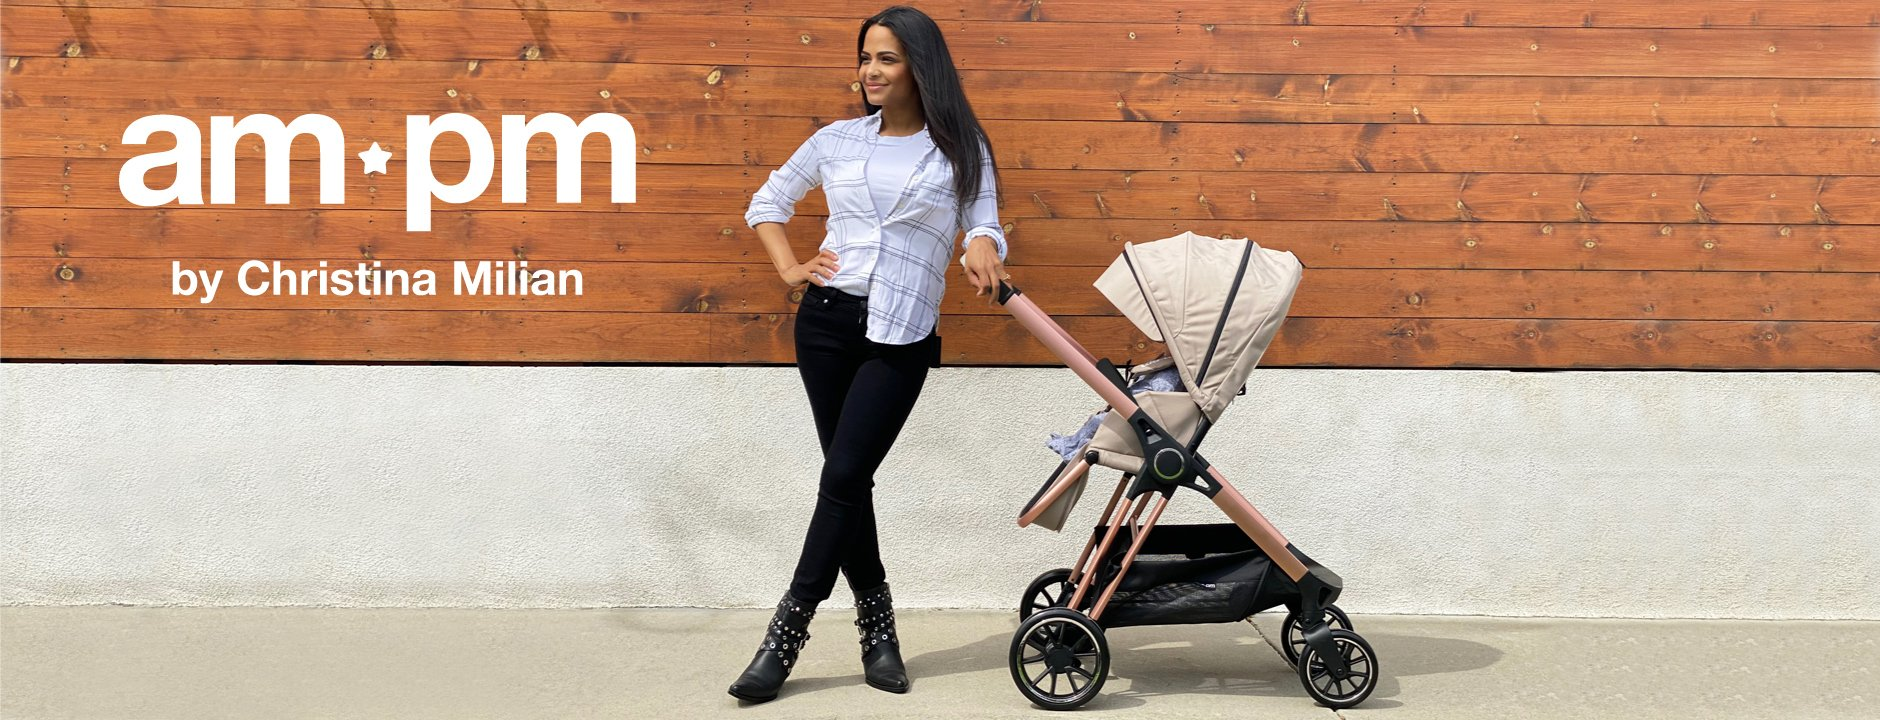 am:pm baby gear design by Christina Milian